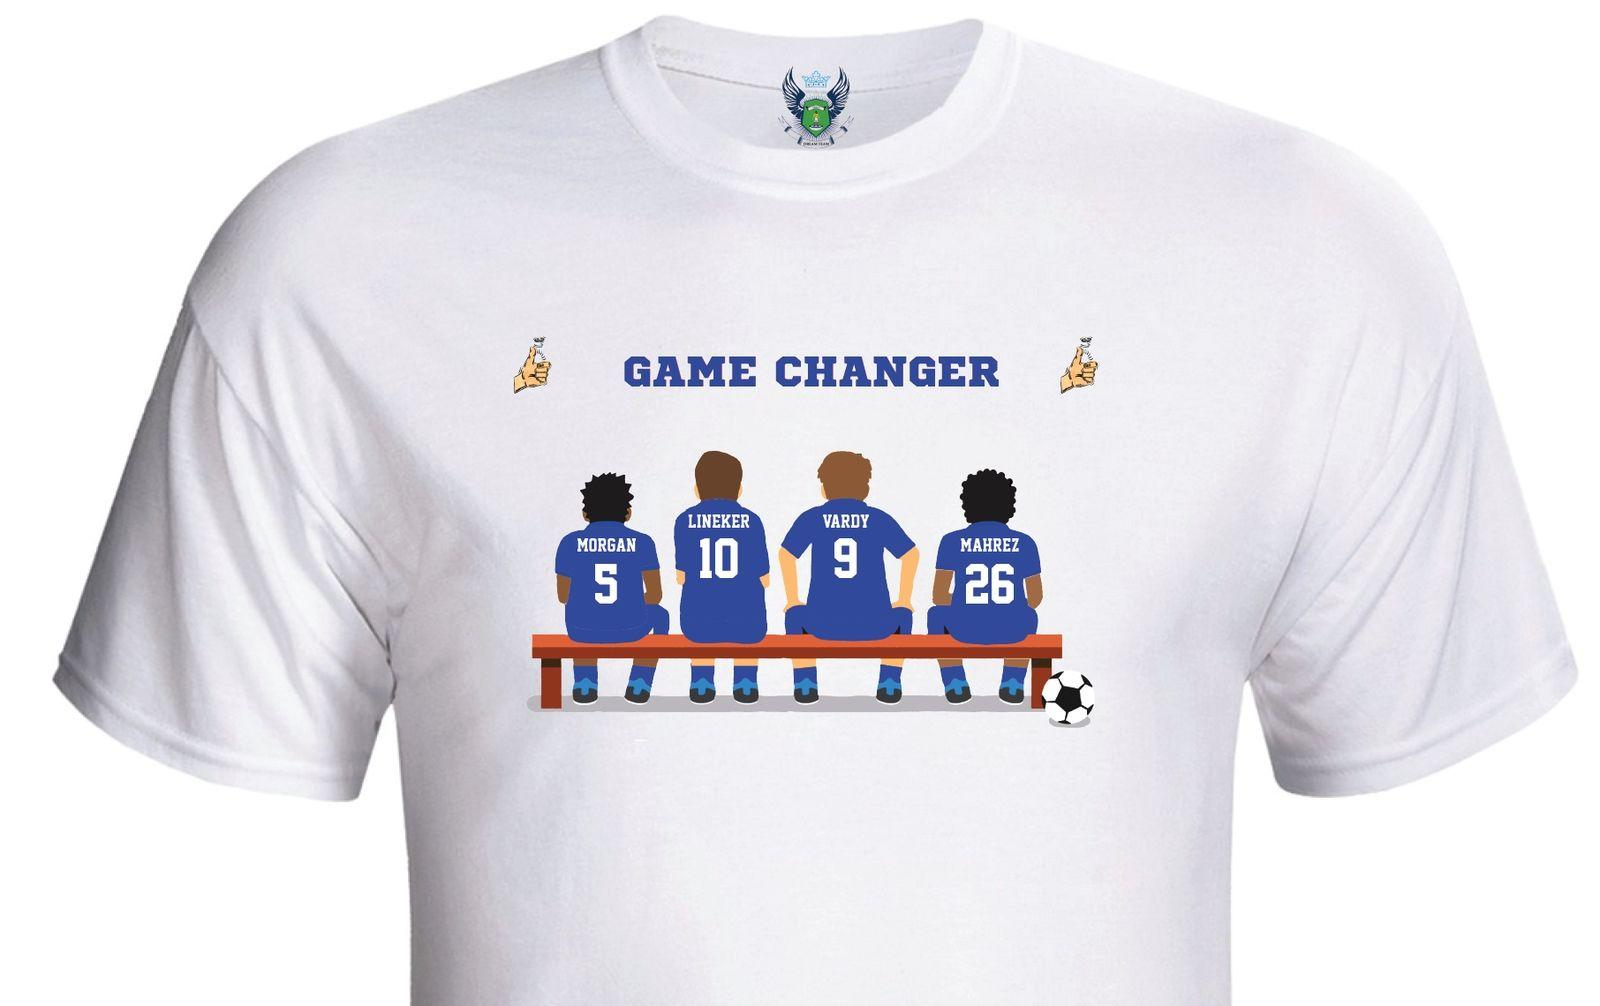 2020 Fashion Personalised Footballs T-Shirt-Pick Your Own Game Changing Players - Teams M-S Tee Shirt